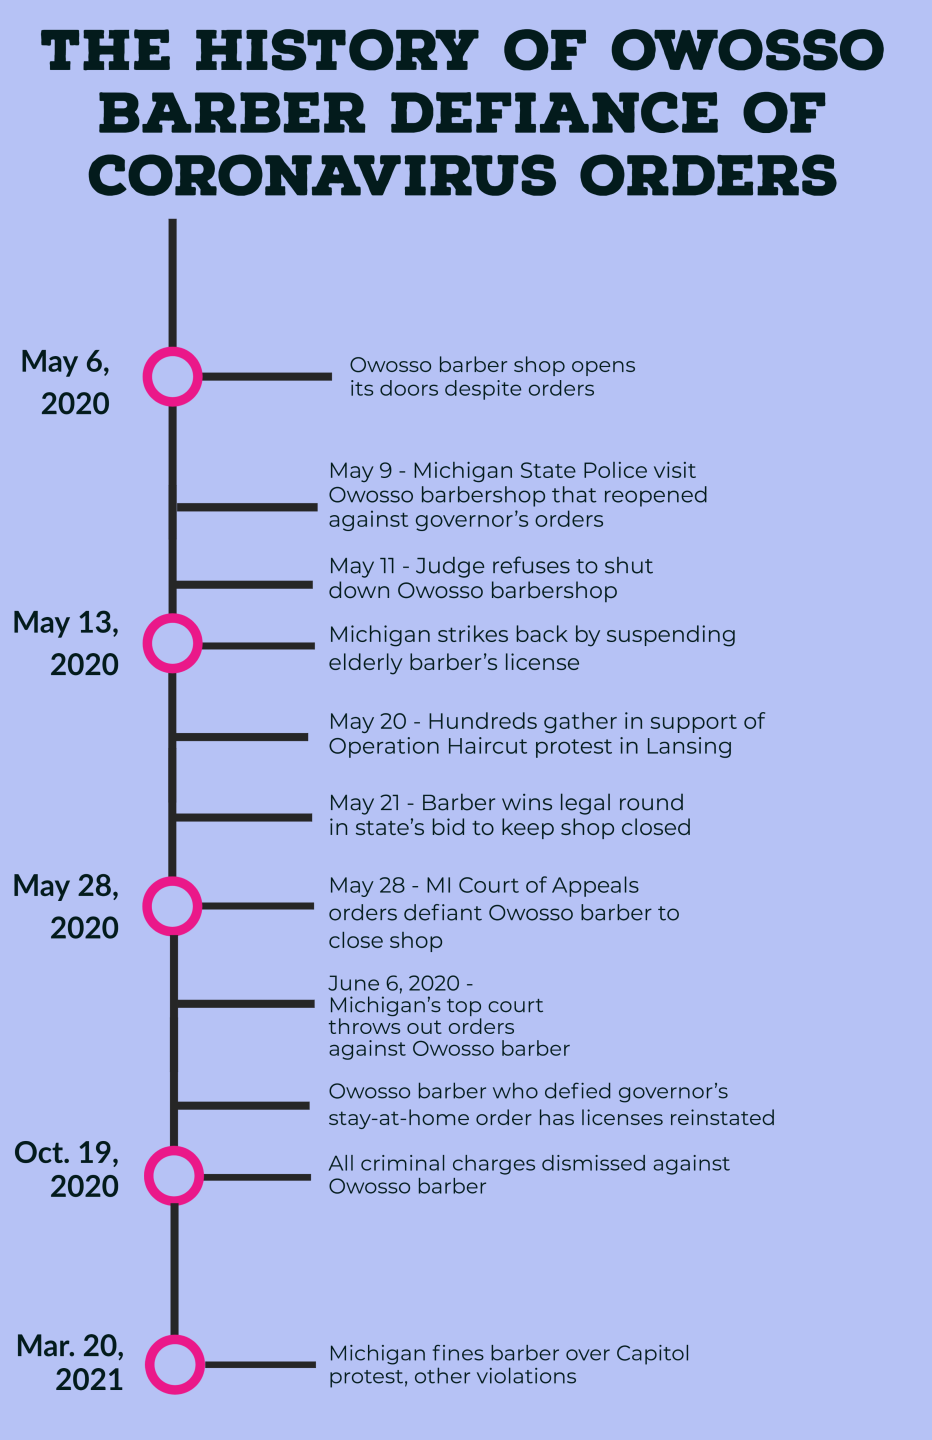 Owosso Barber Timeline of Events